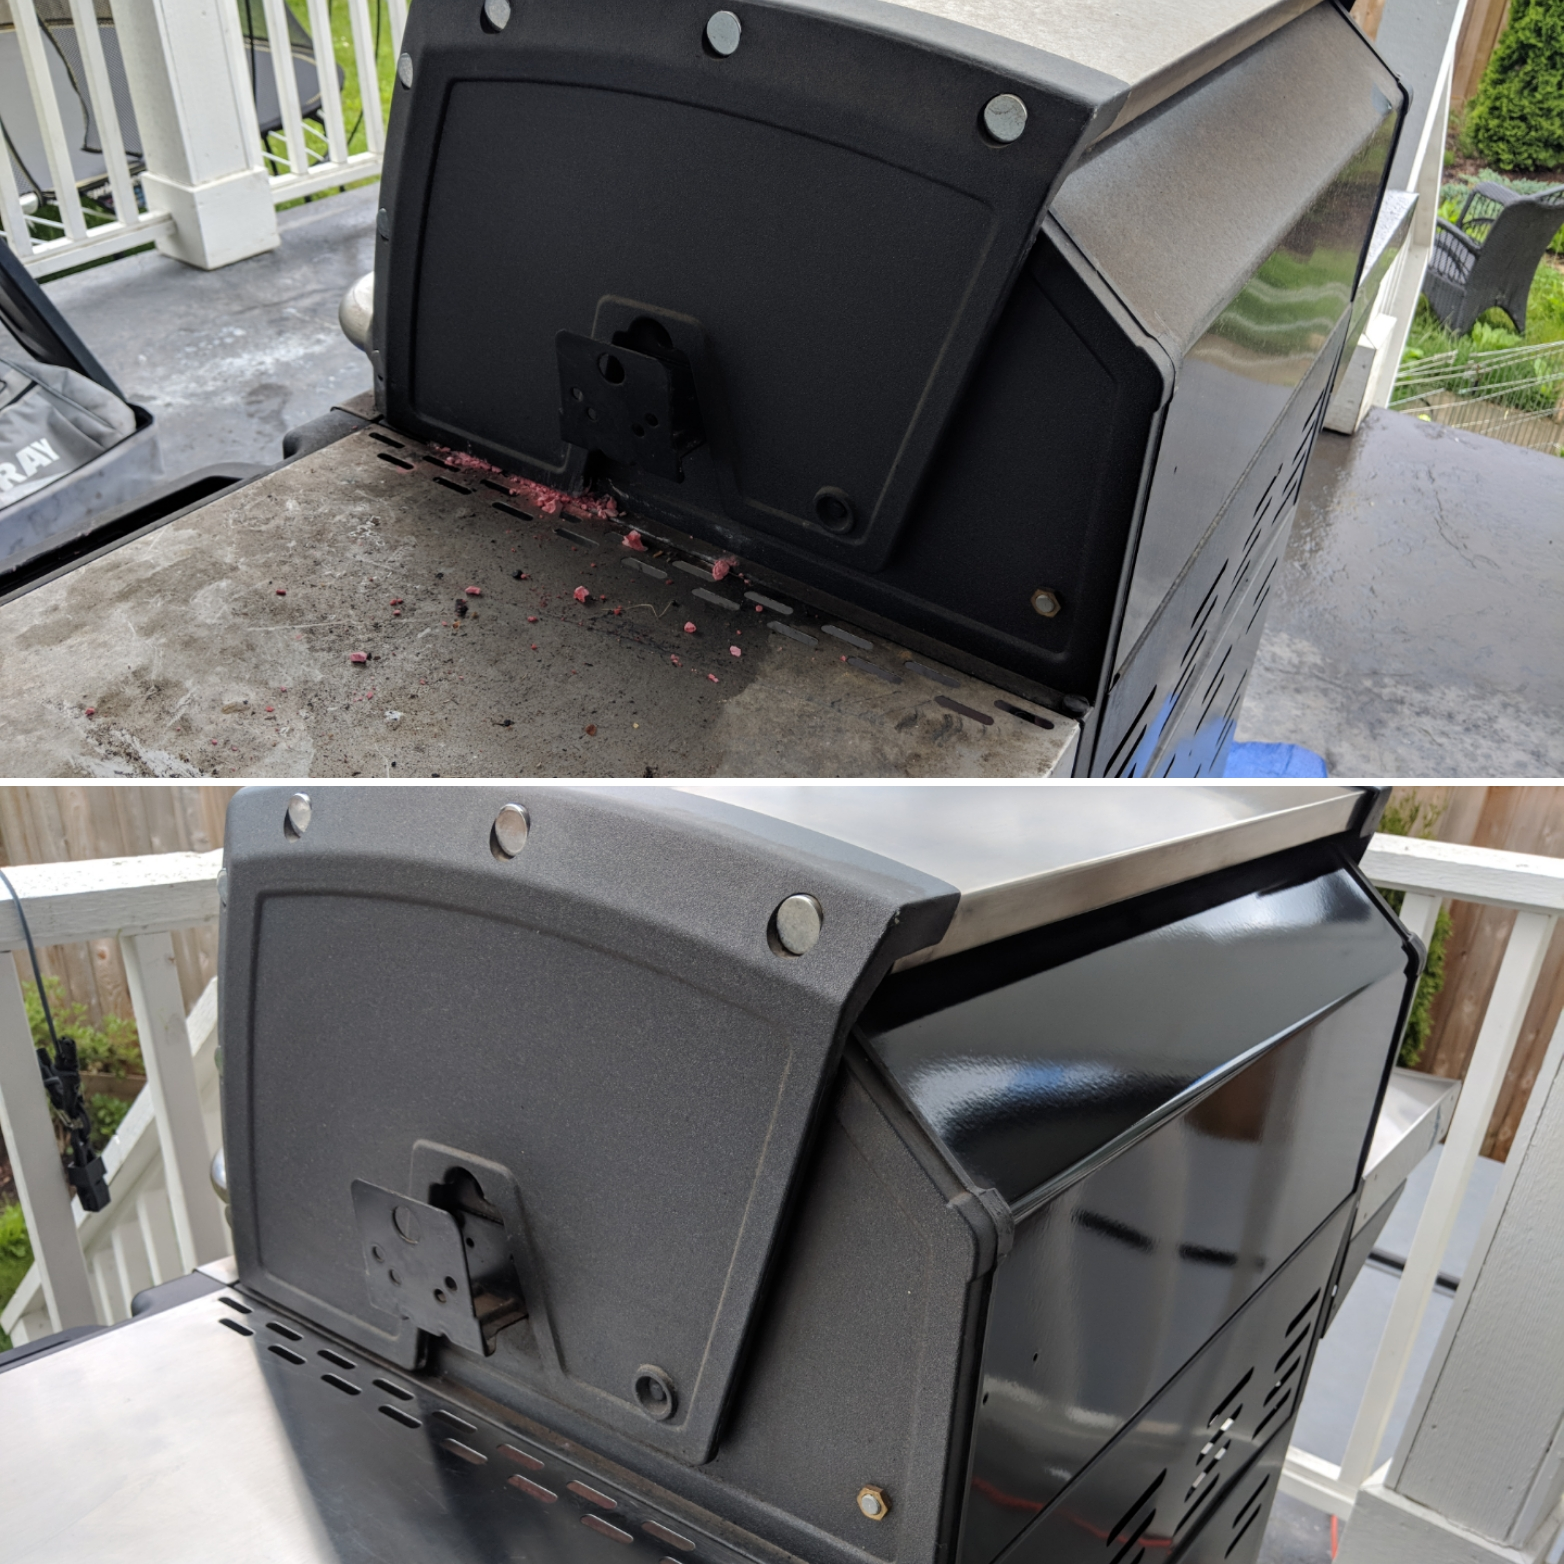 Before and After Grill Cleaning